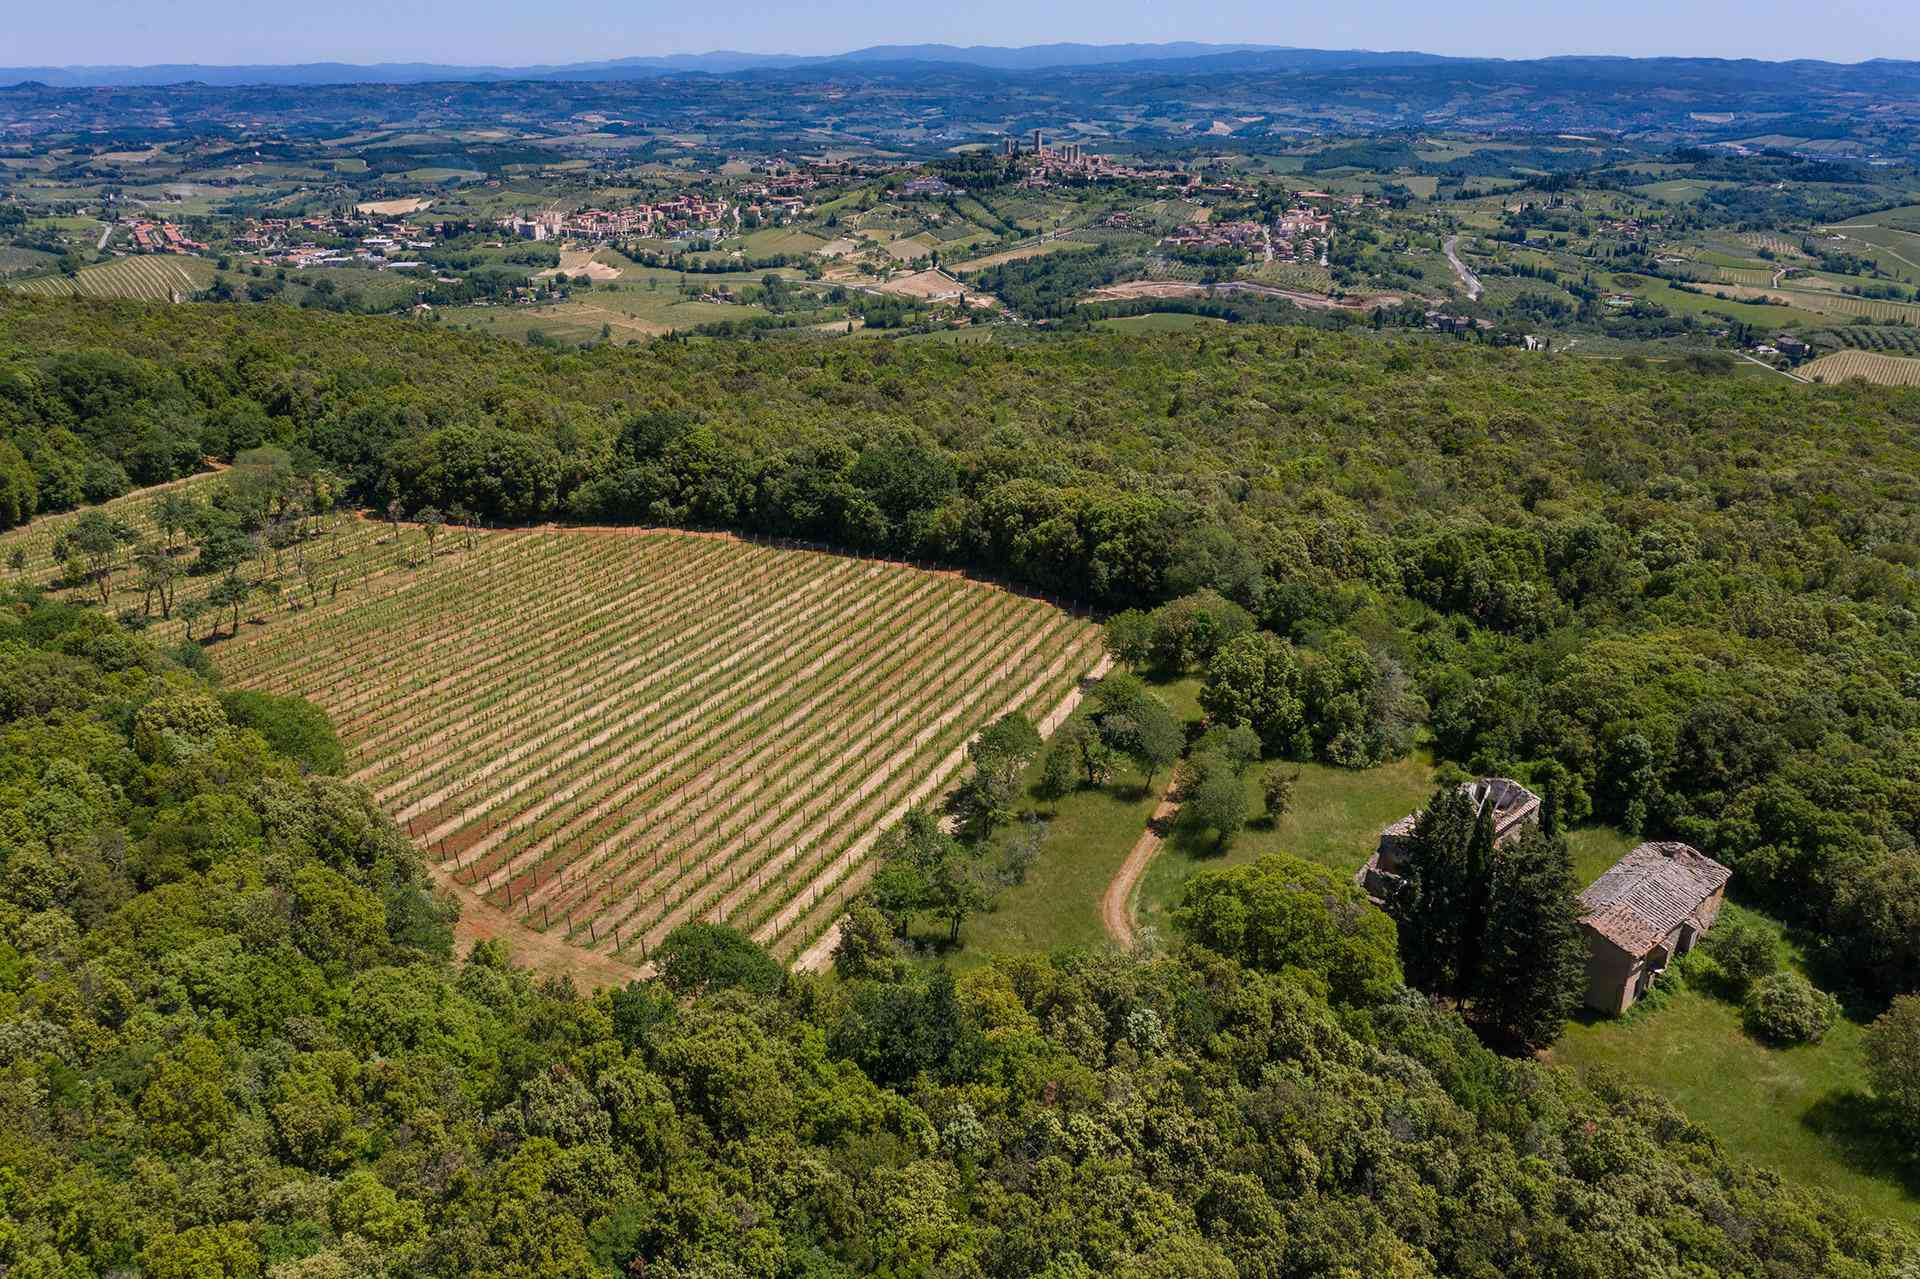 Aerial view of Montenidoli vines with San Gimignano in the distance